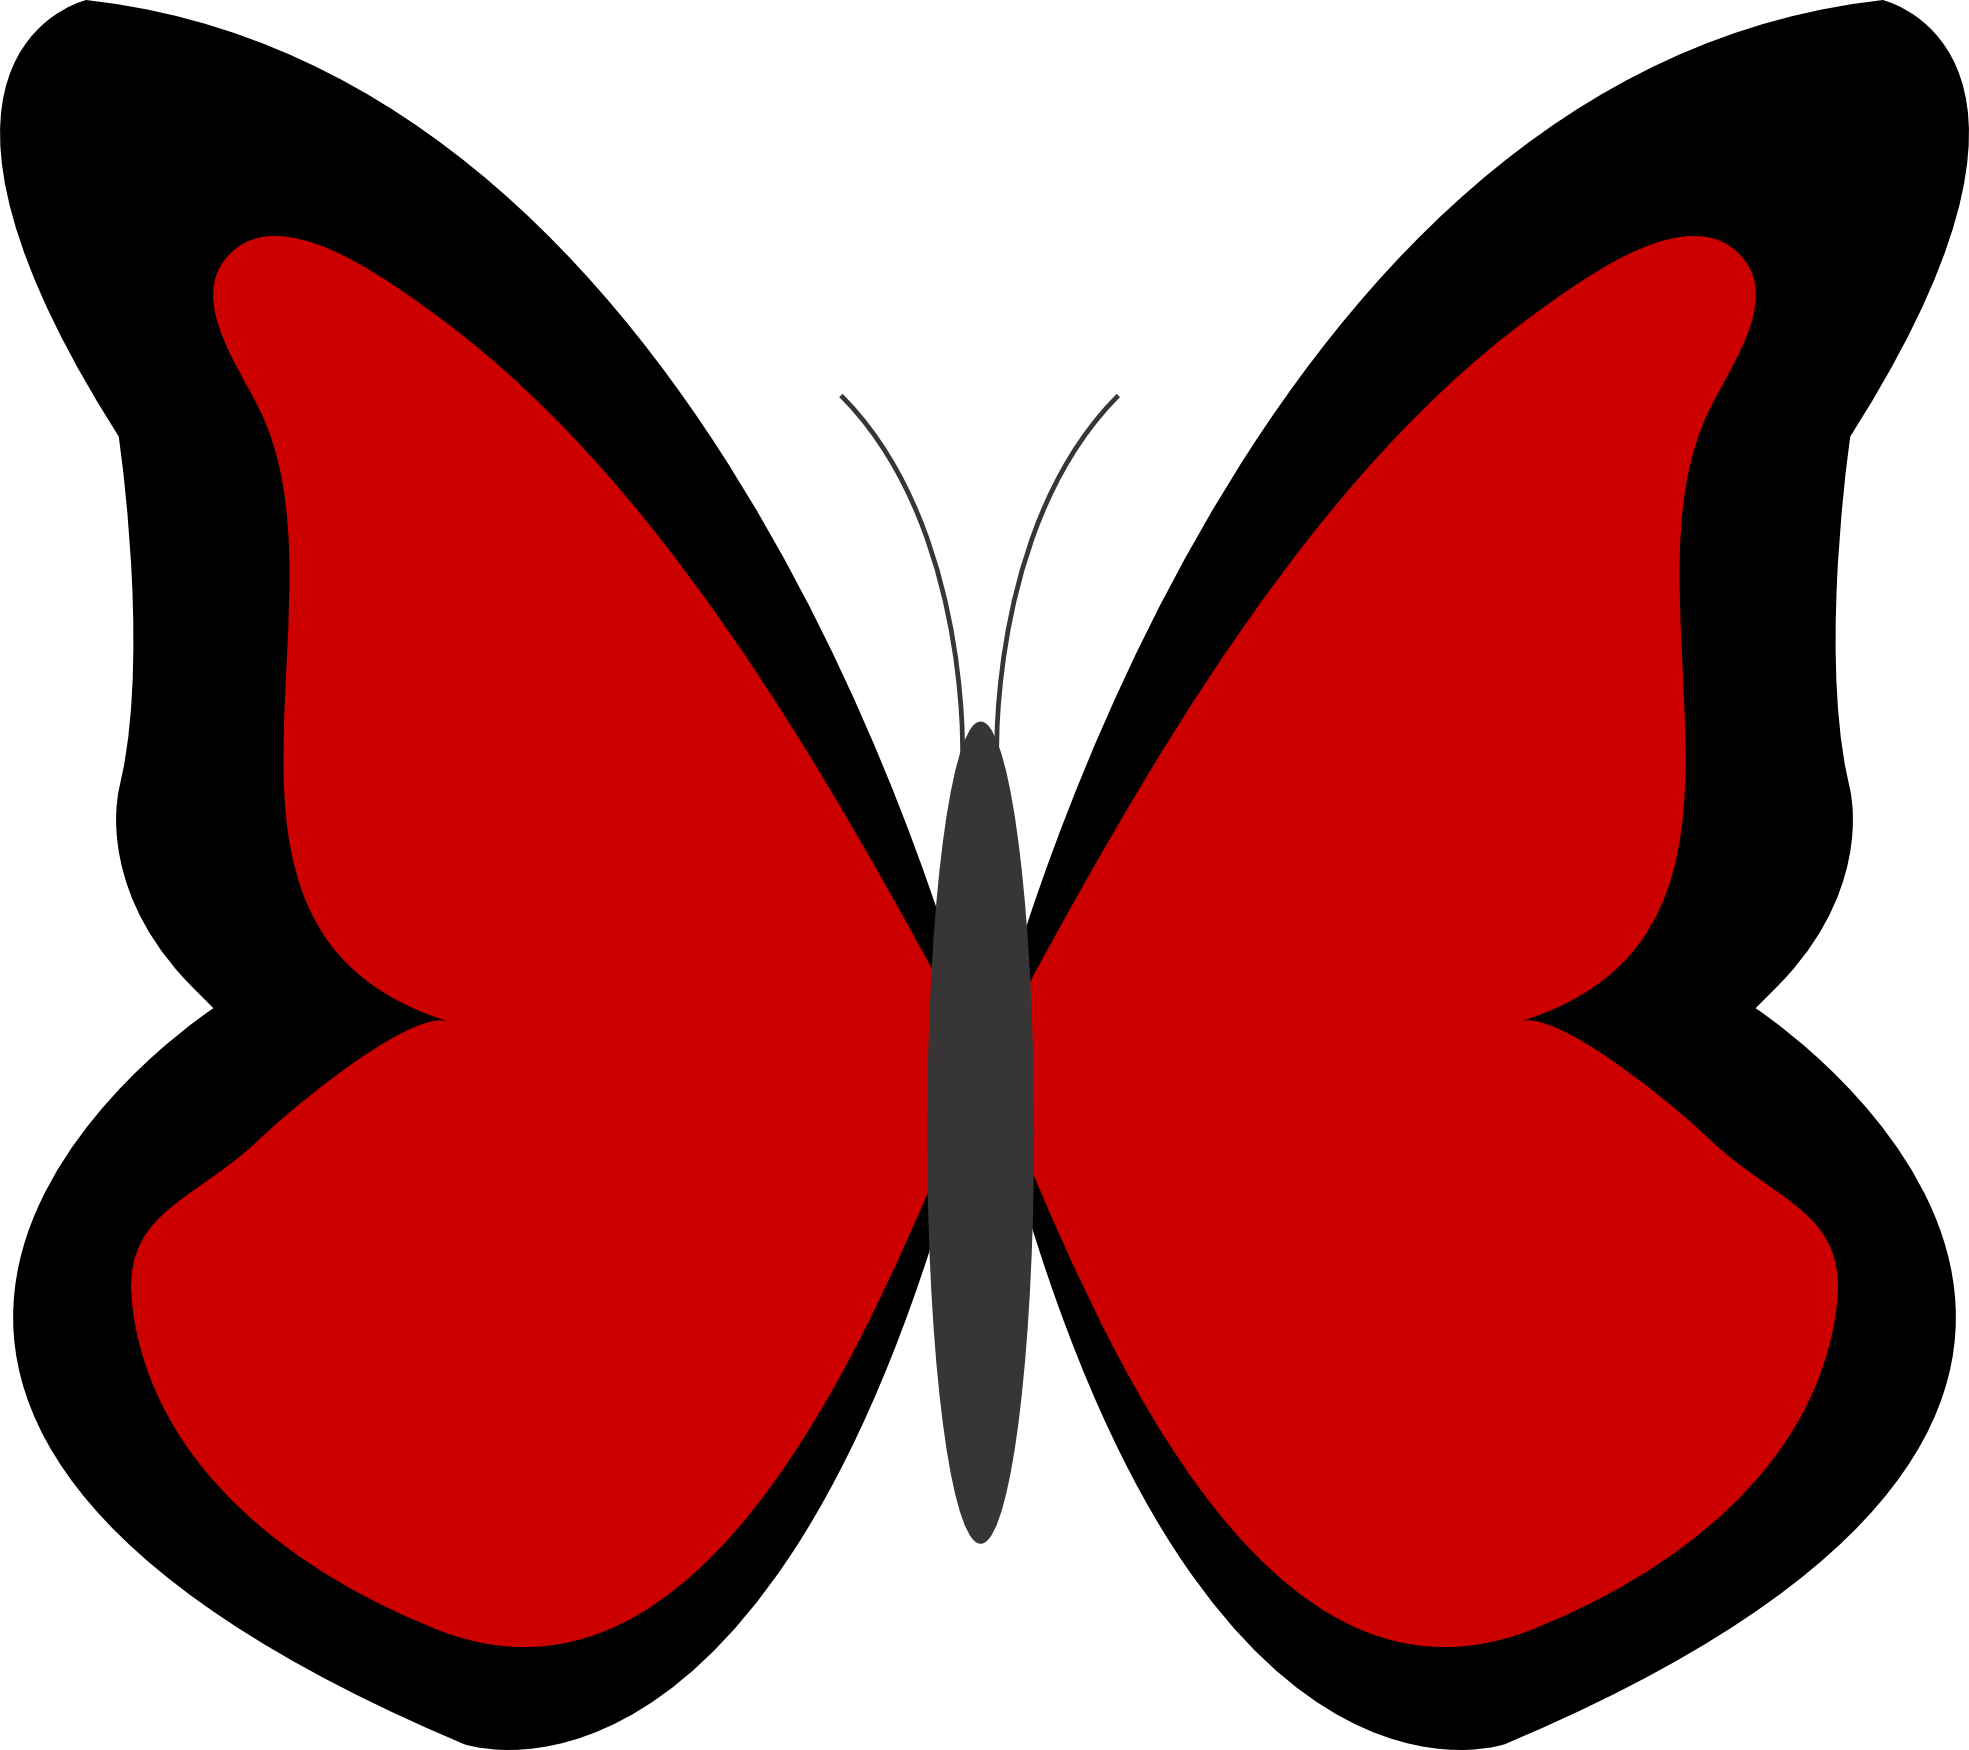 Butterfly 26 Color Colour Red 3 Peace xochi.info ...